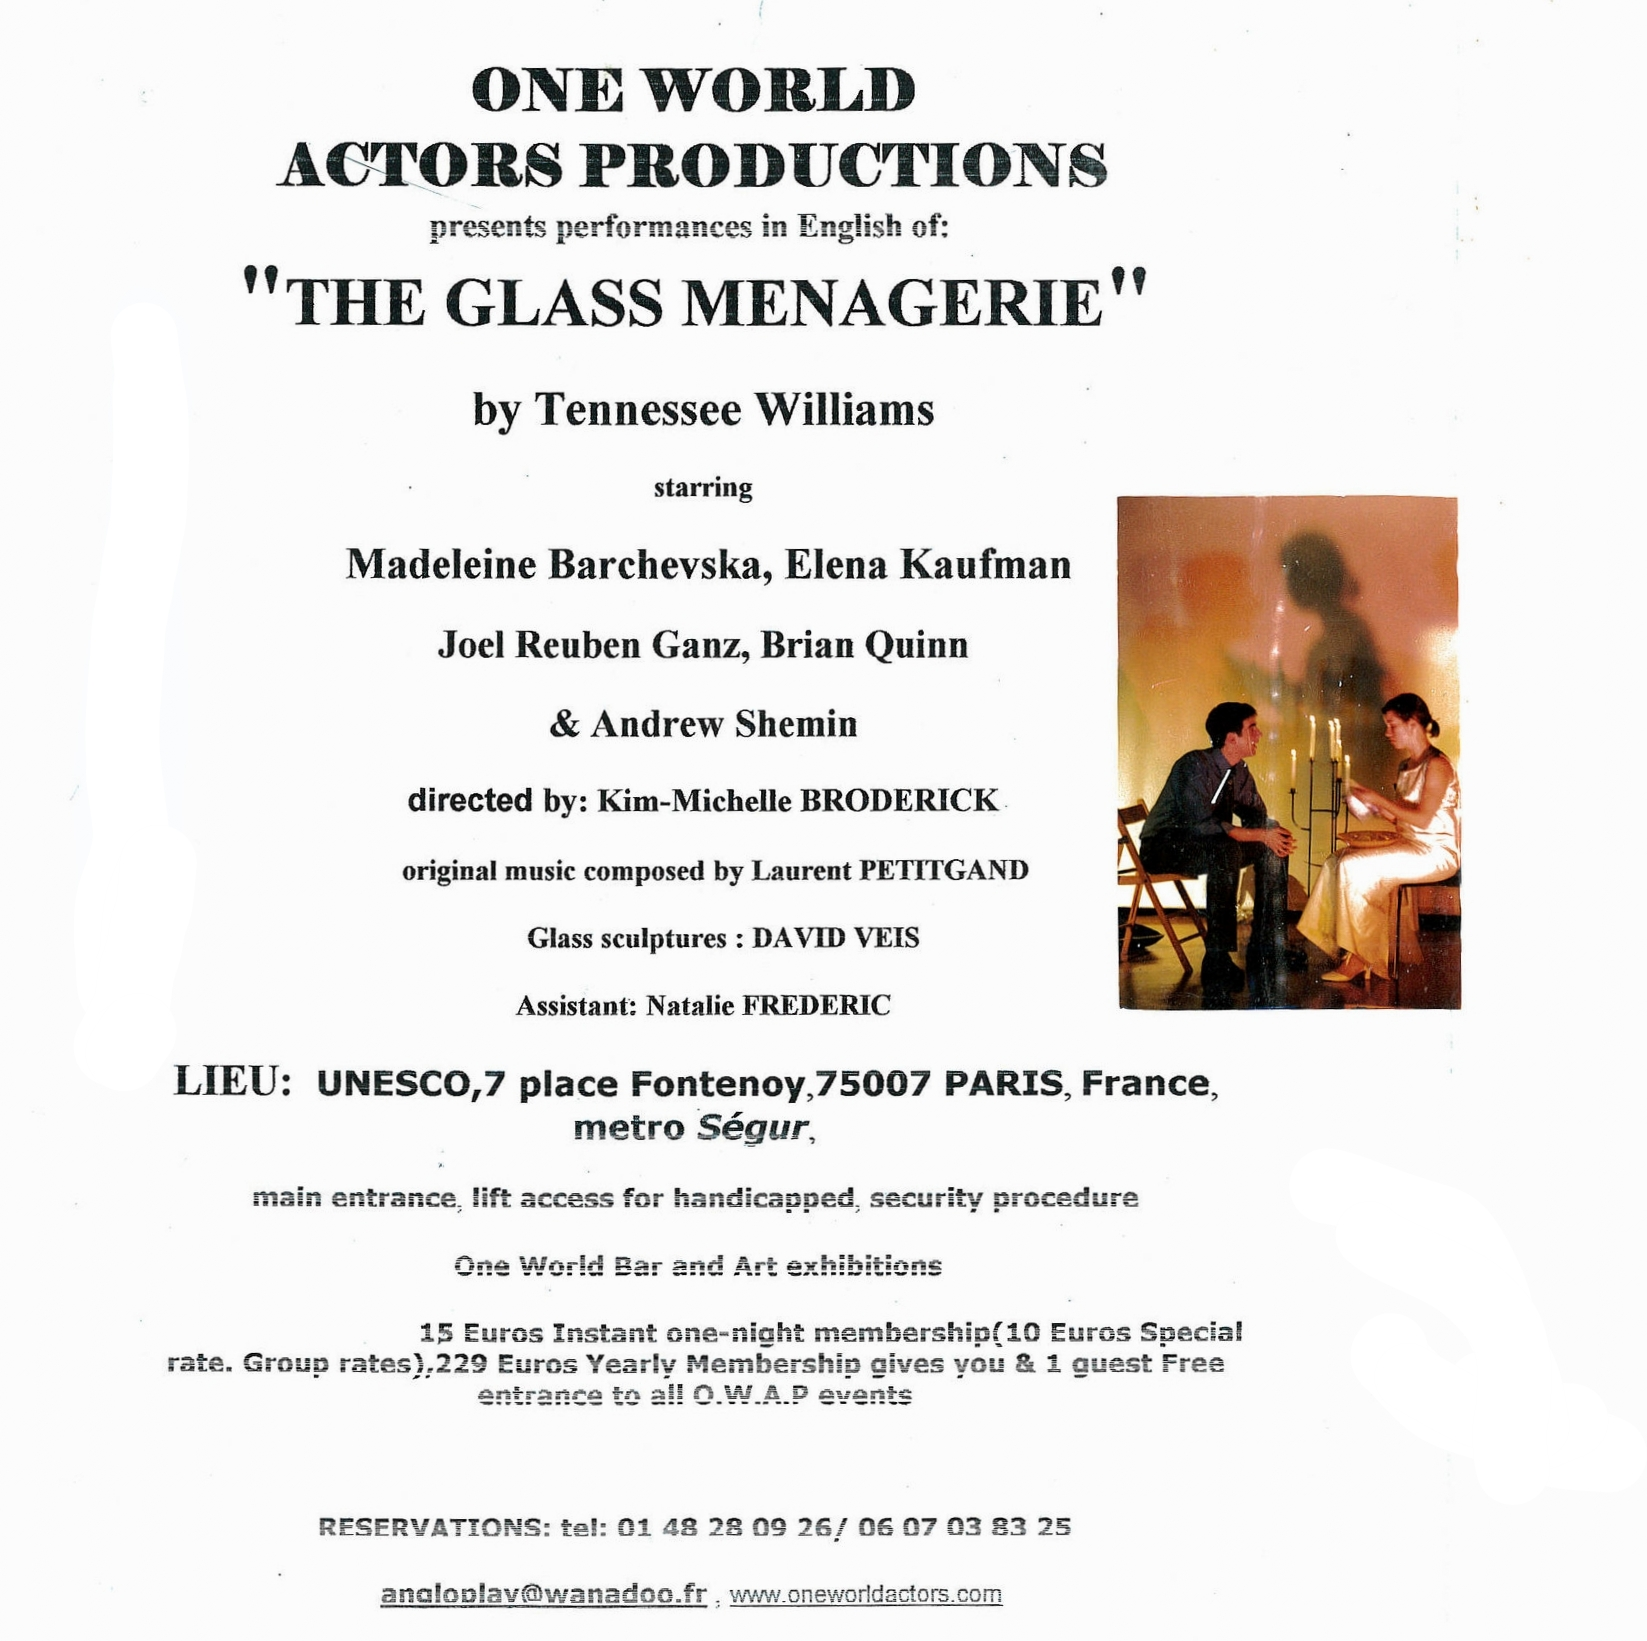 Oe World Actors Productions creation of THE GLASS MENAGERIE by Tennessee Williams UNESCO Paris France.jpg